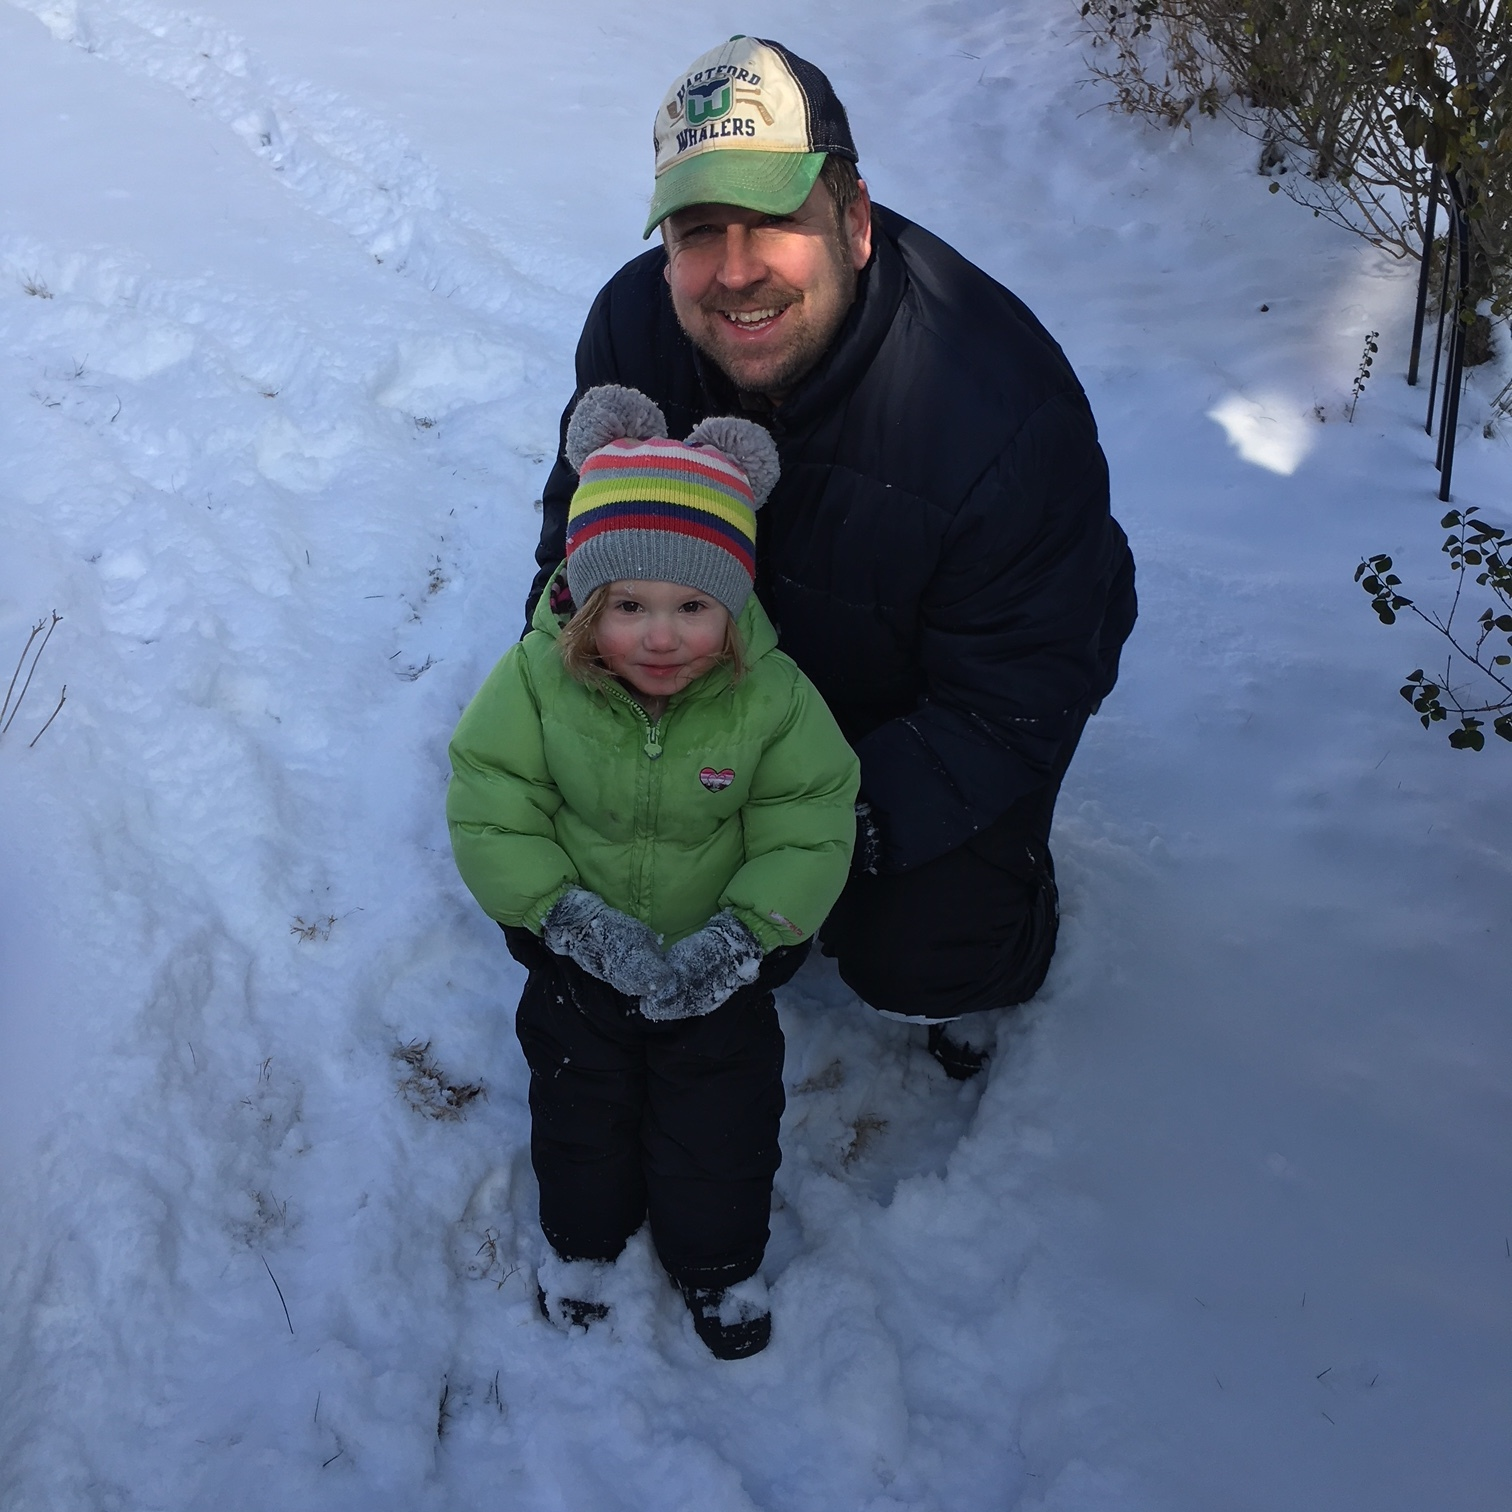 Jay and Edie playing in the snow